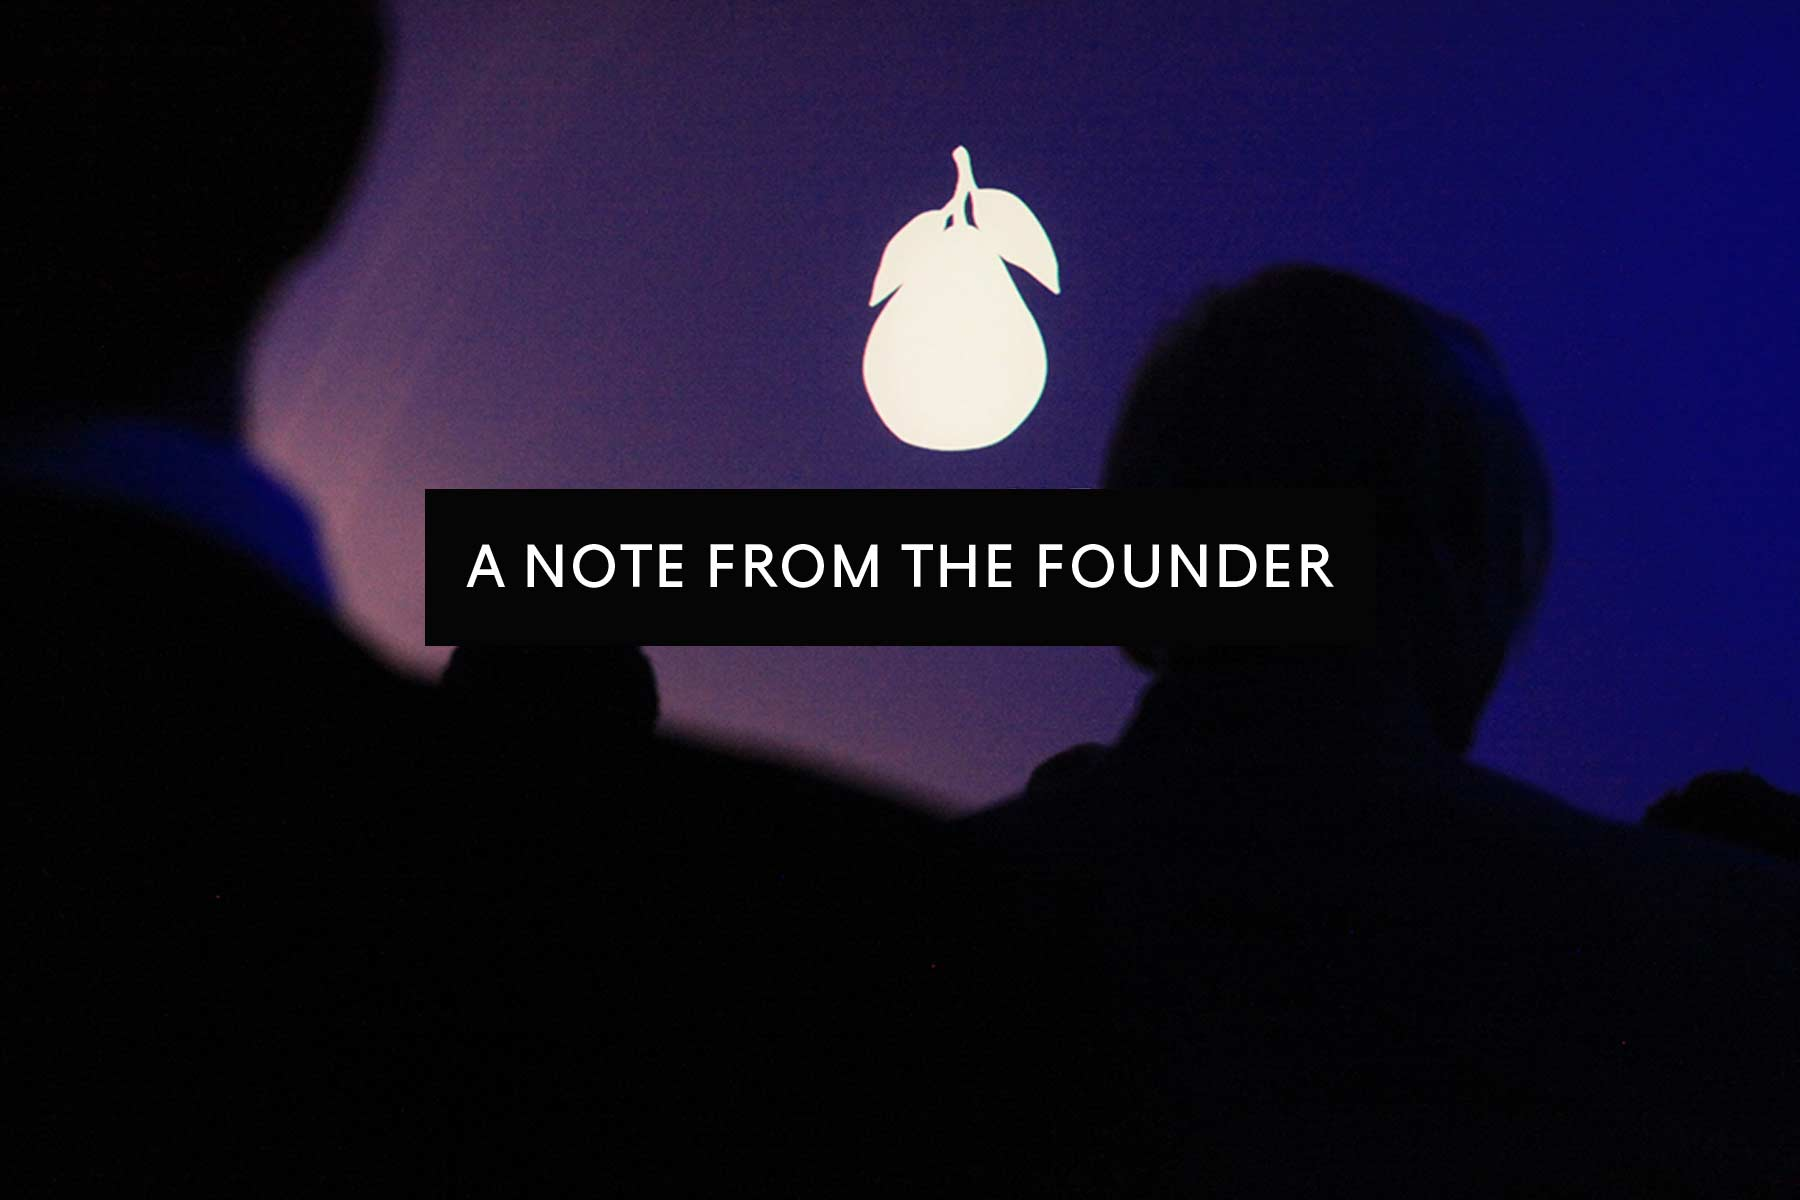 NOTEFROMFOUNDER